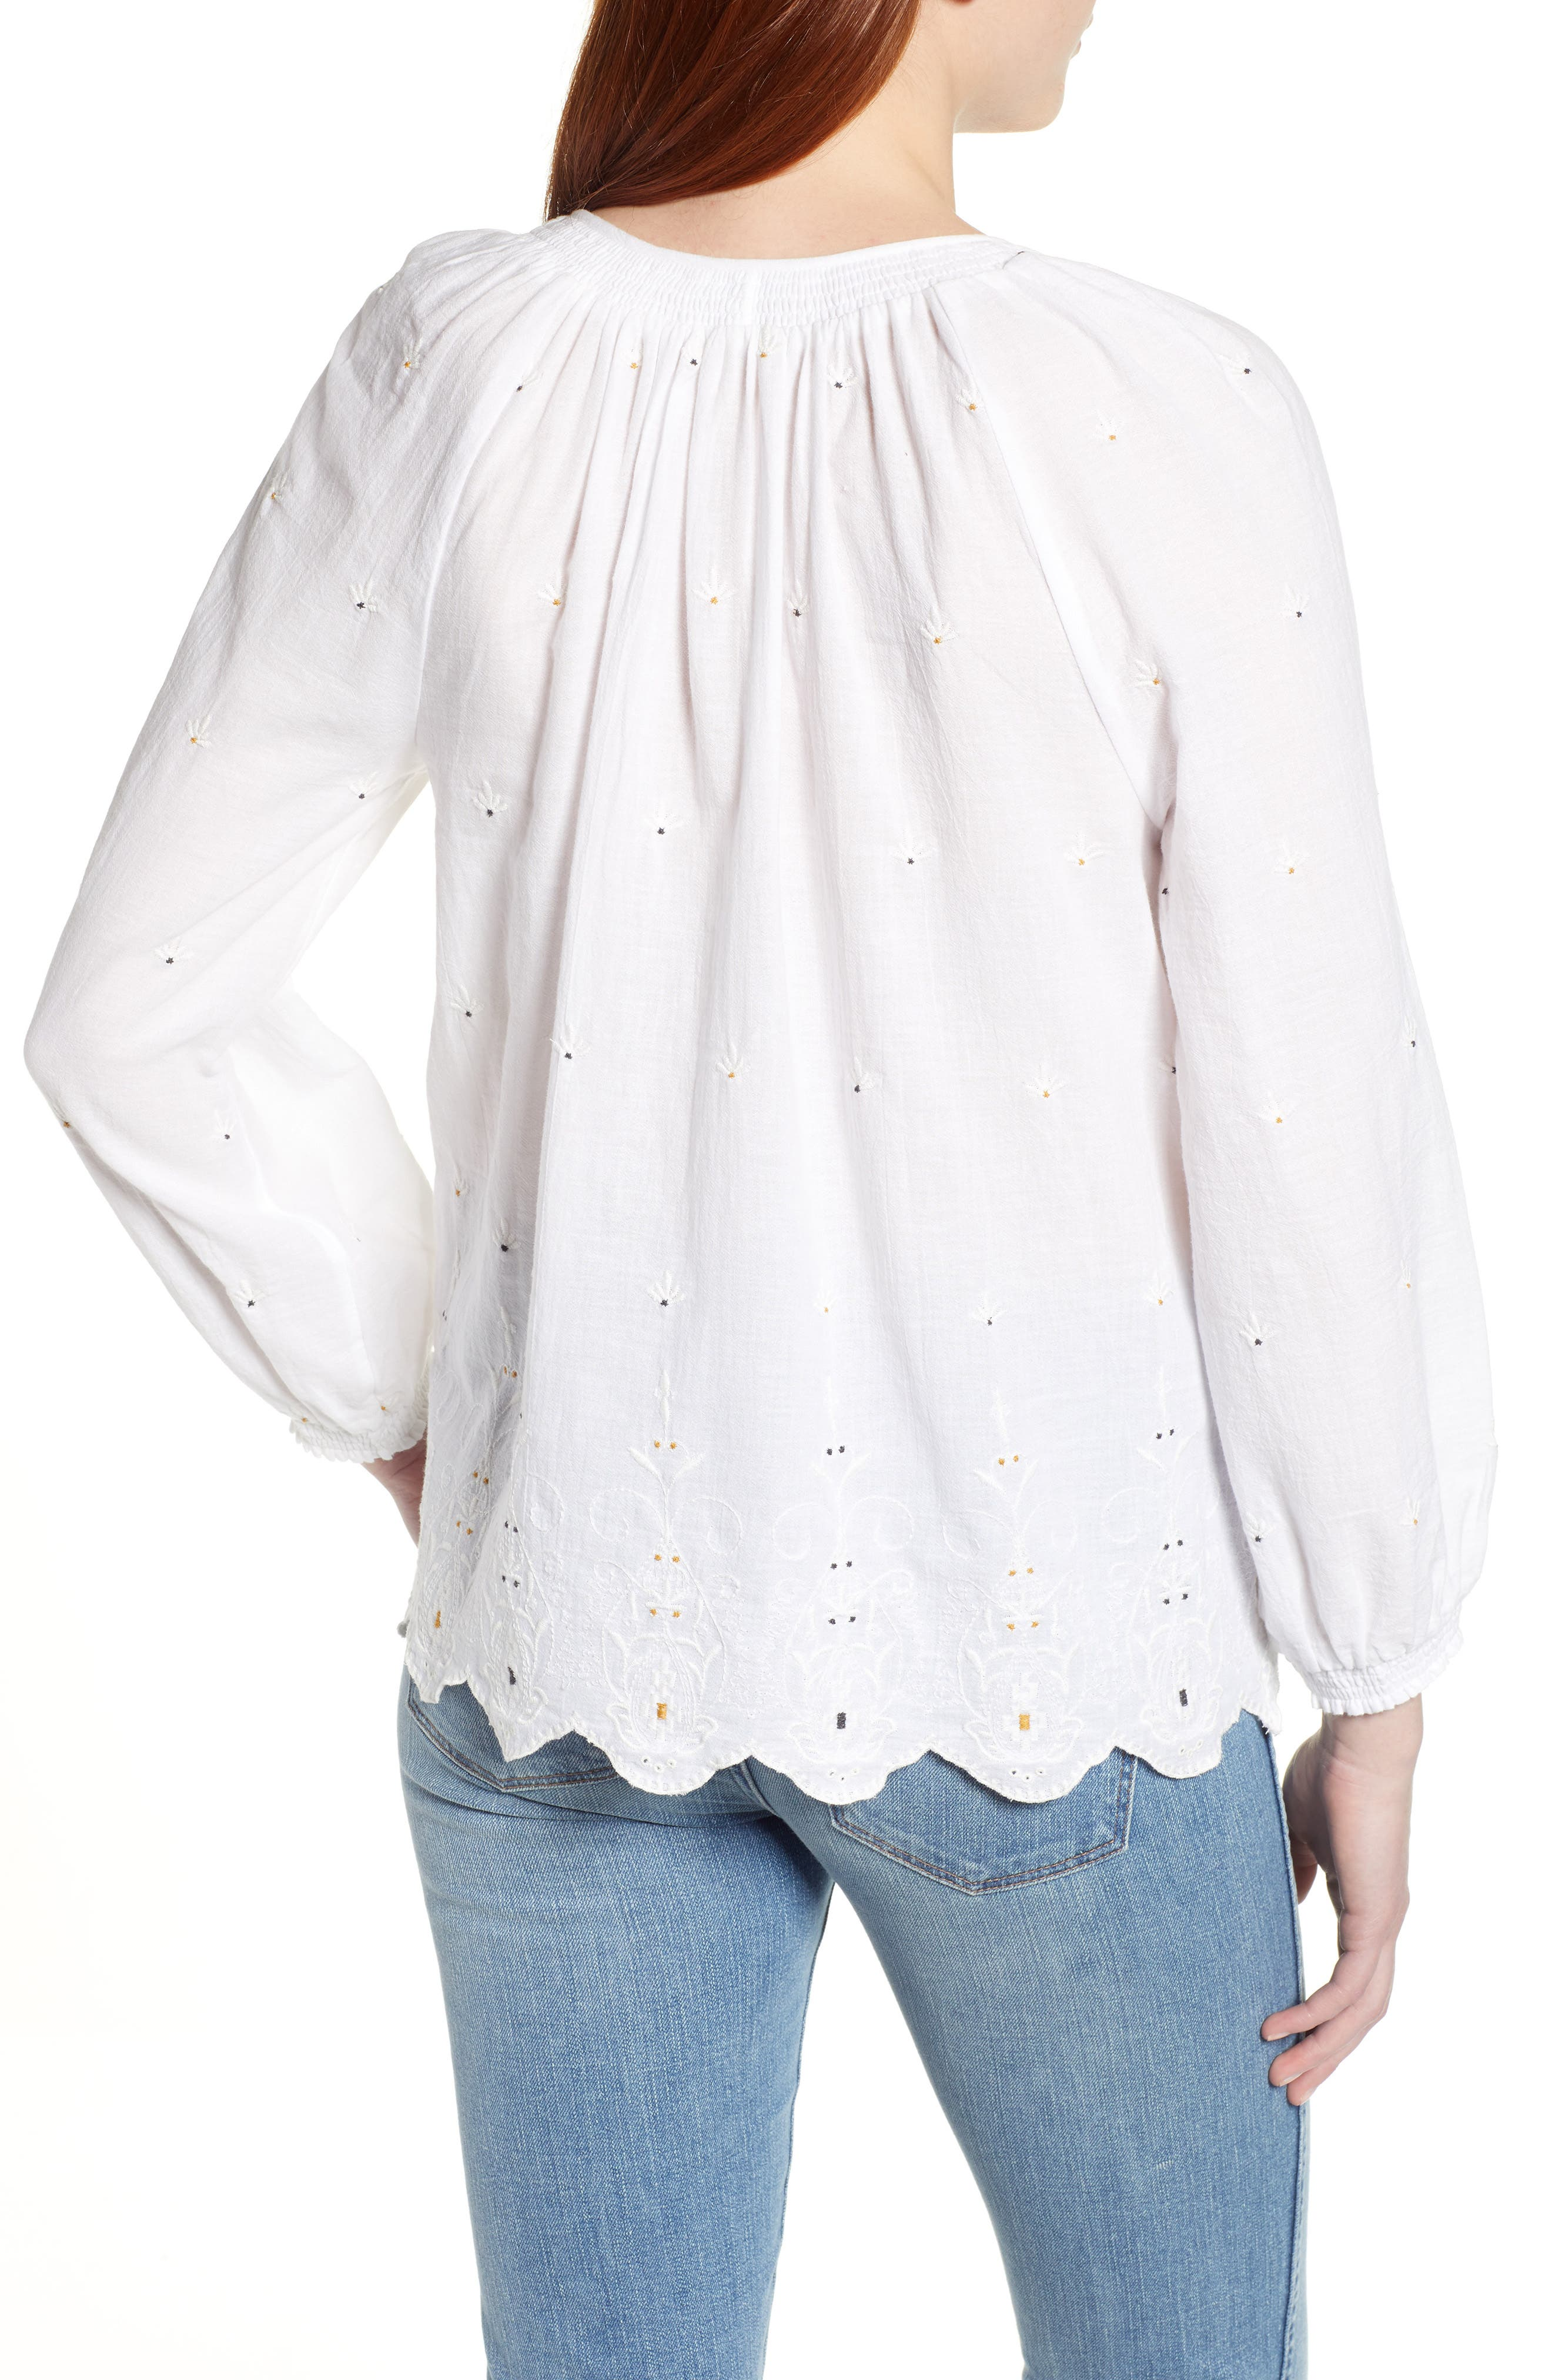 LUCKY BRAND, Eyelet Peasant Top, Alternate thumbnail 2, color, LUCKY WHITE